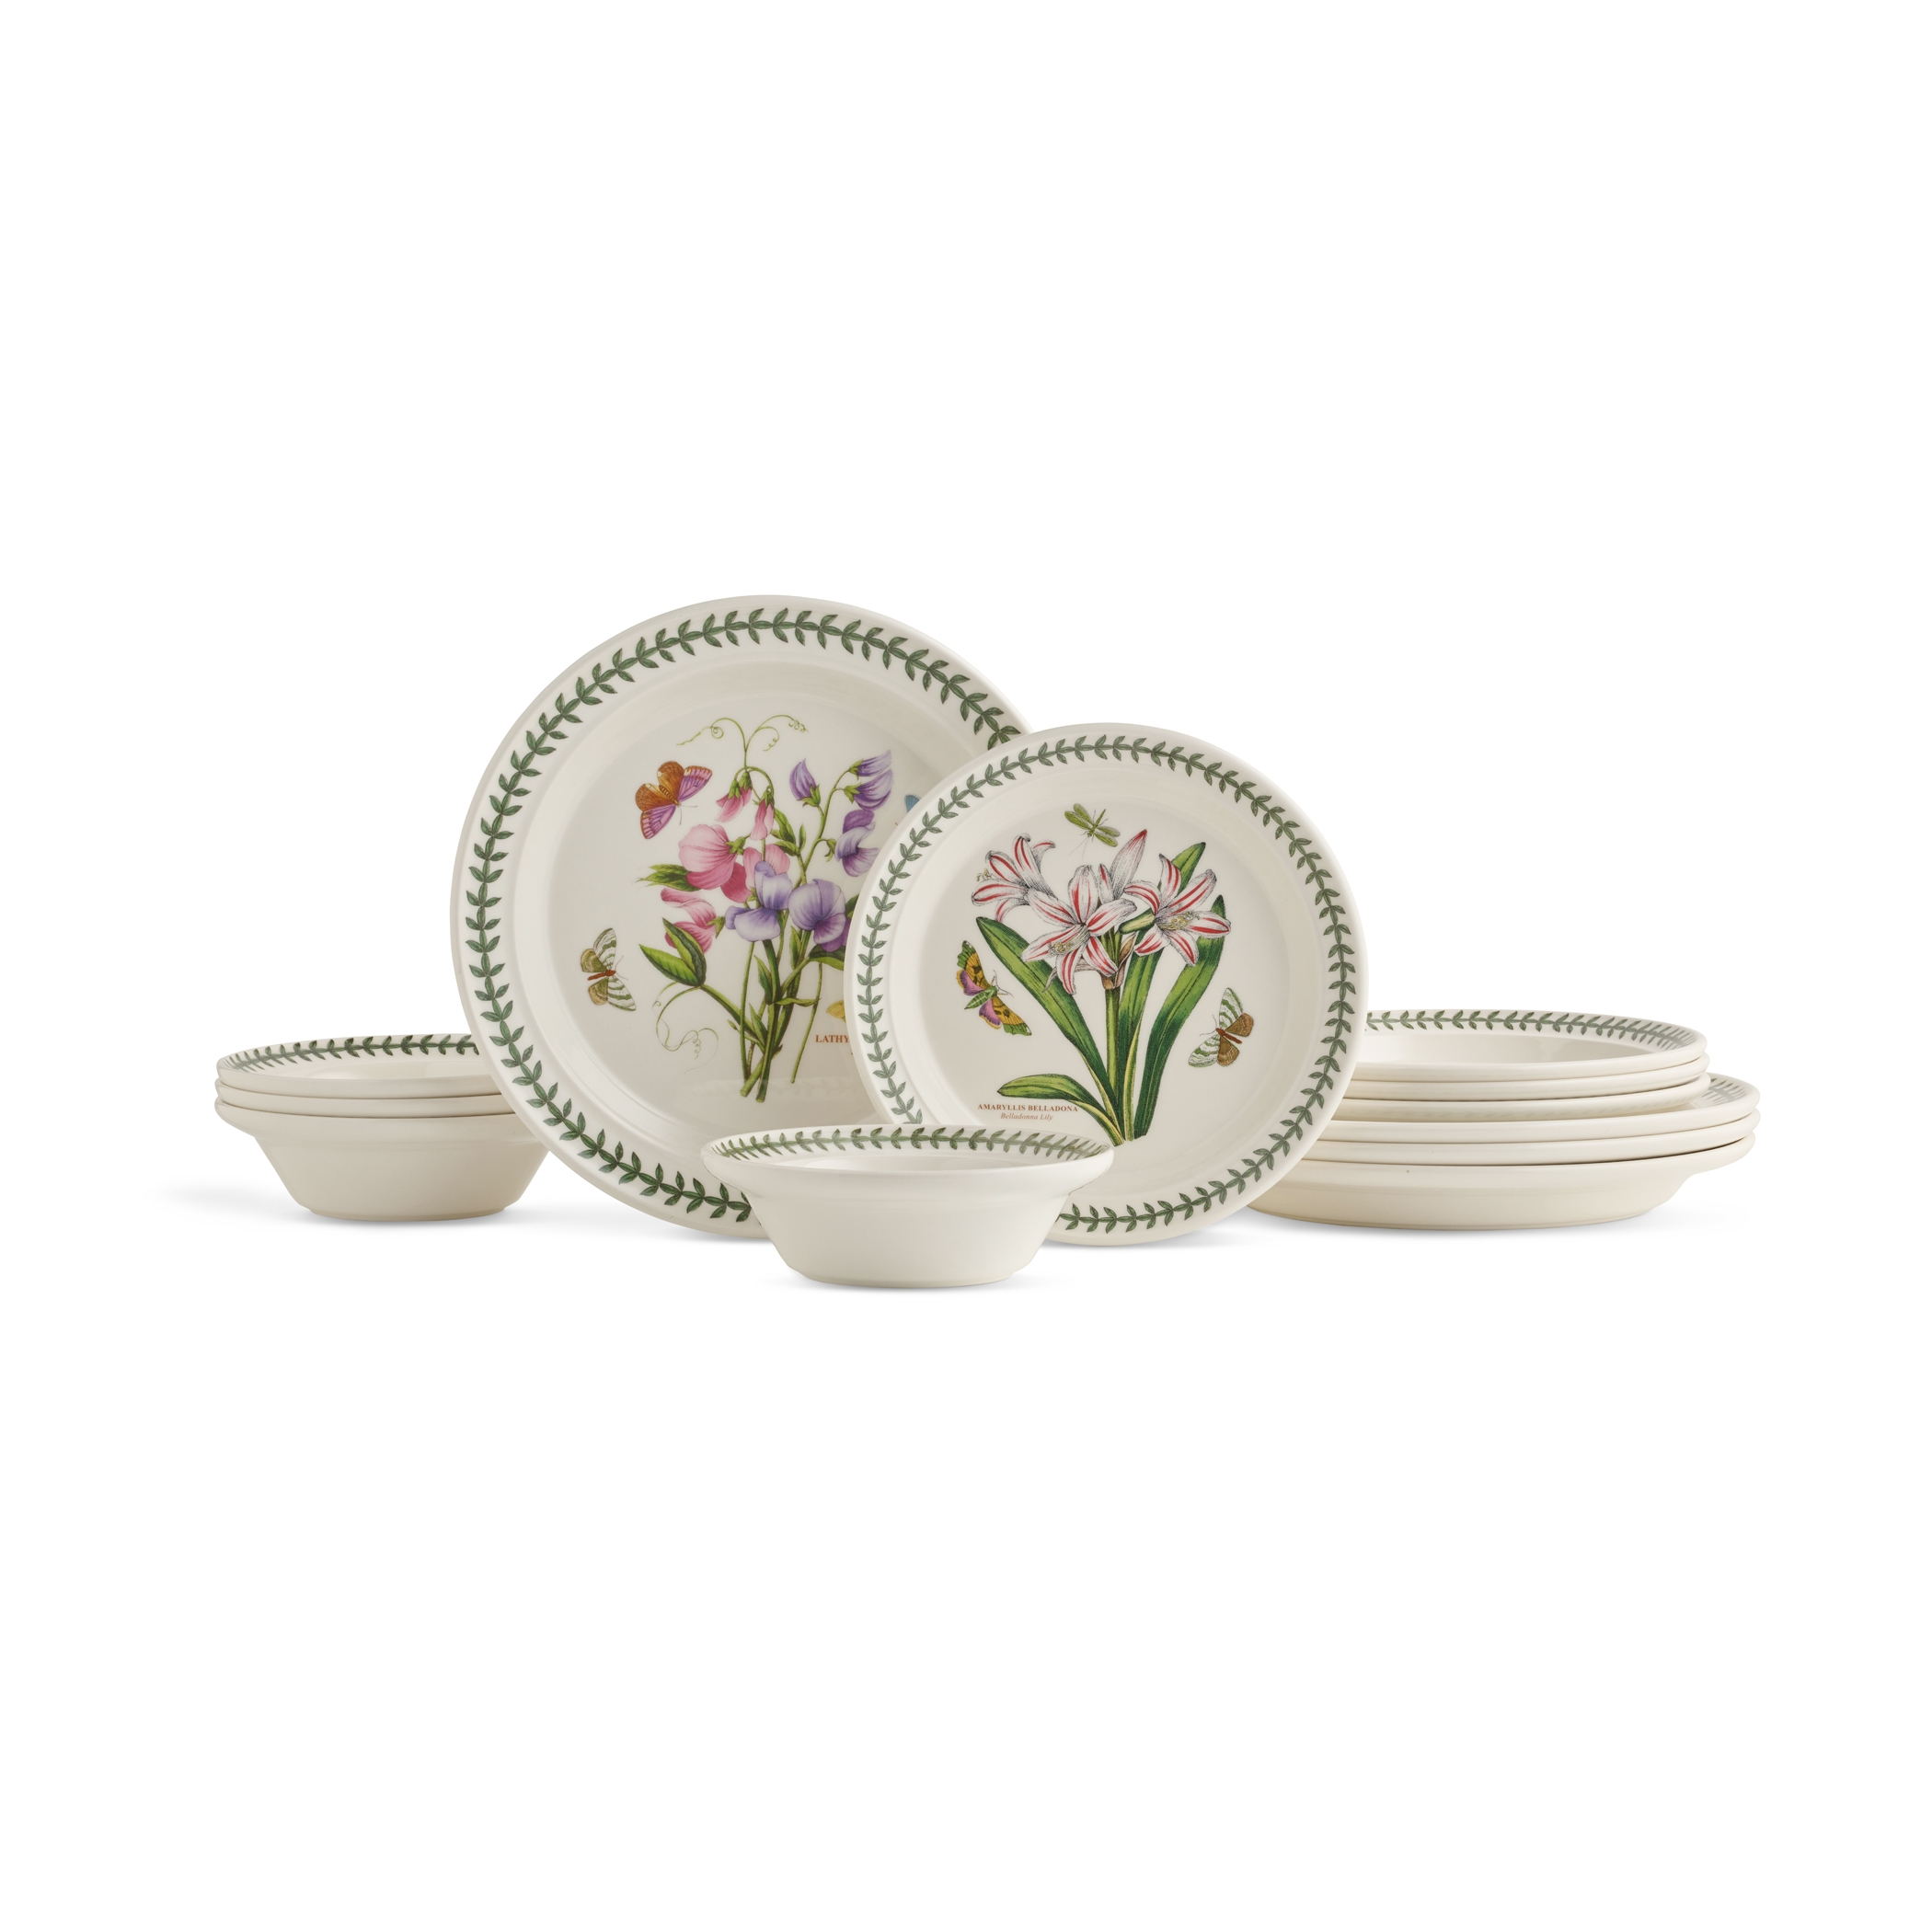 Portmeirion Botanic Garden 12-Piece Set Made In England image number 0